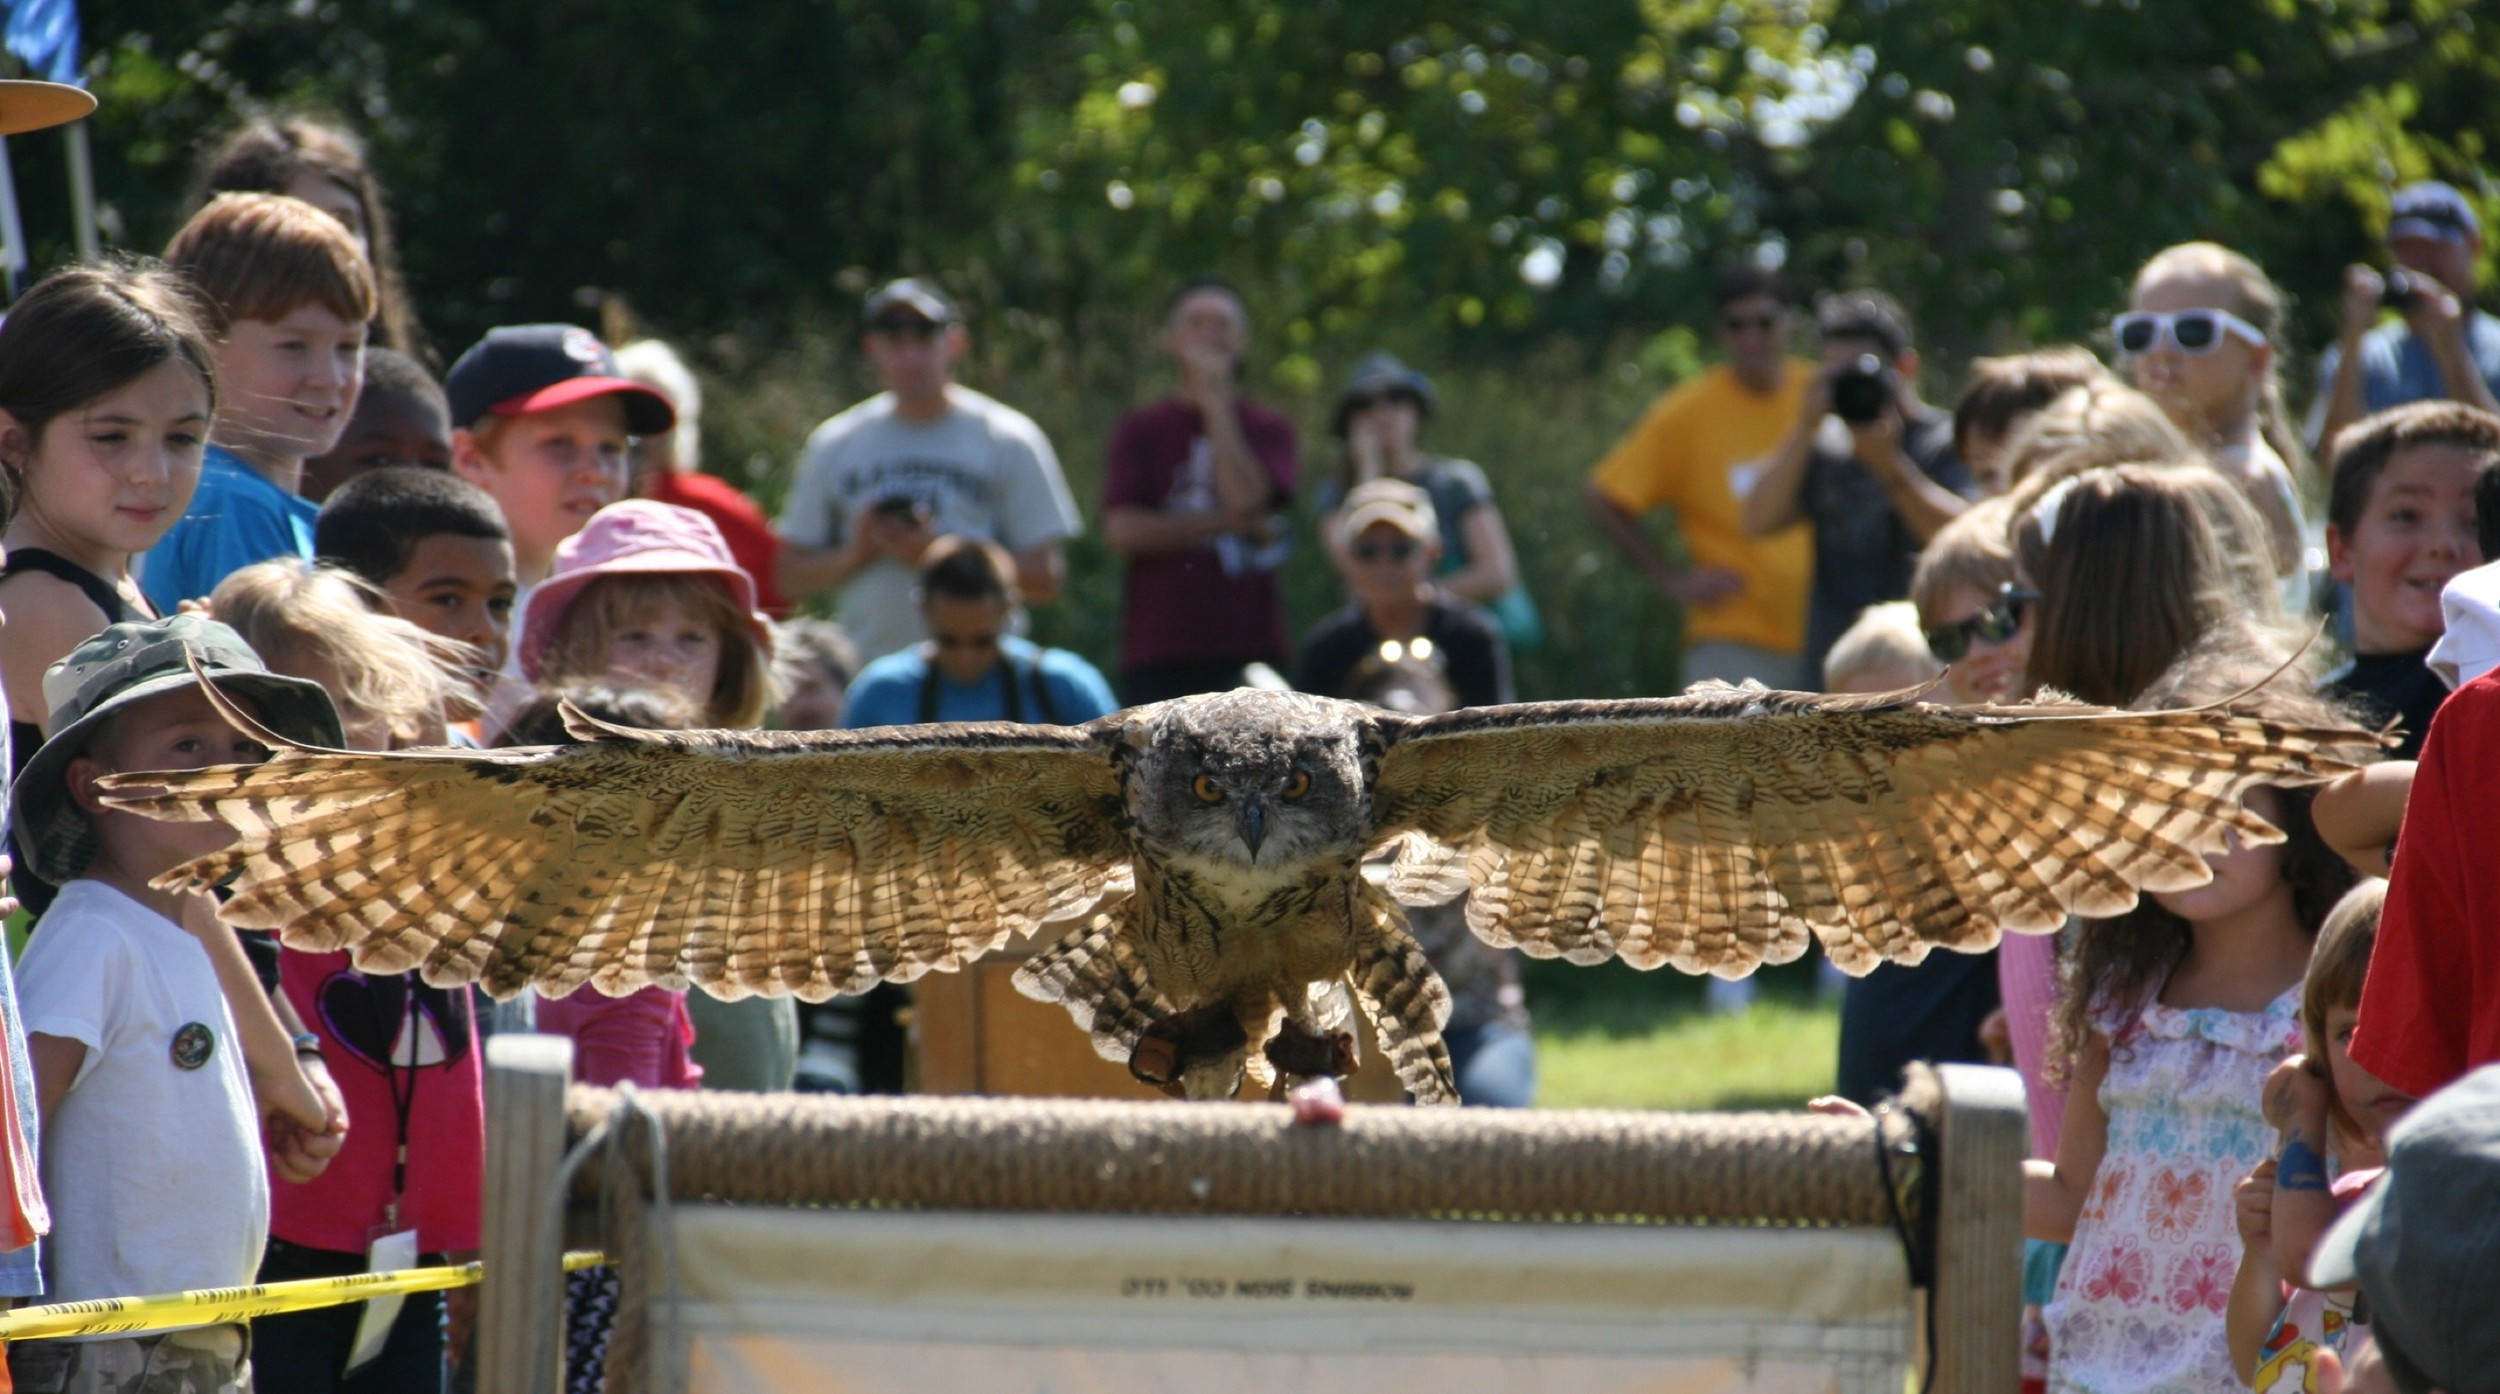 European Eagle Owl Spreads its Wings